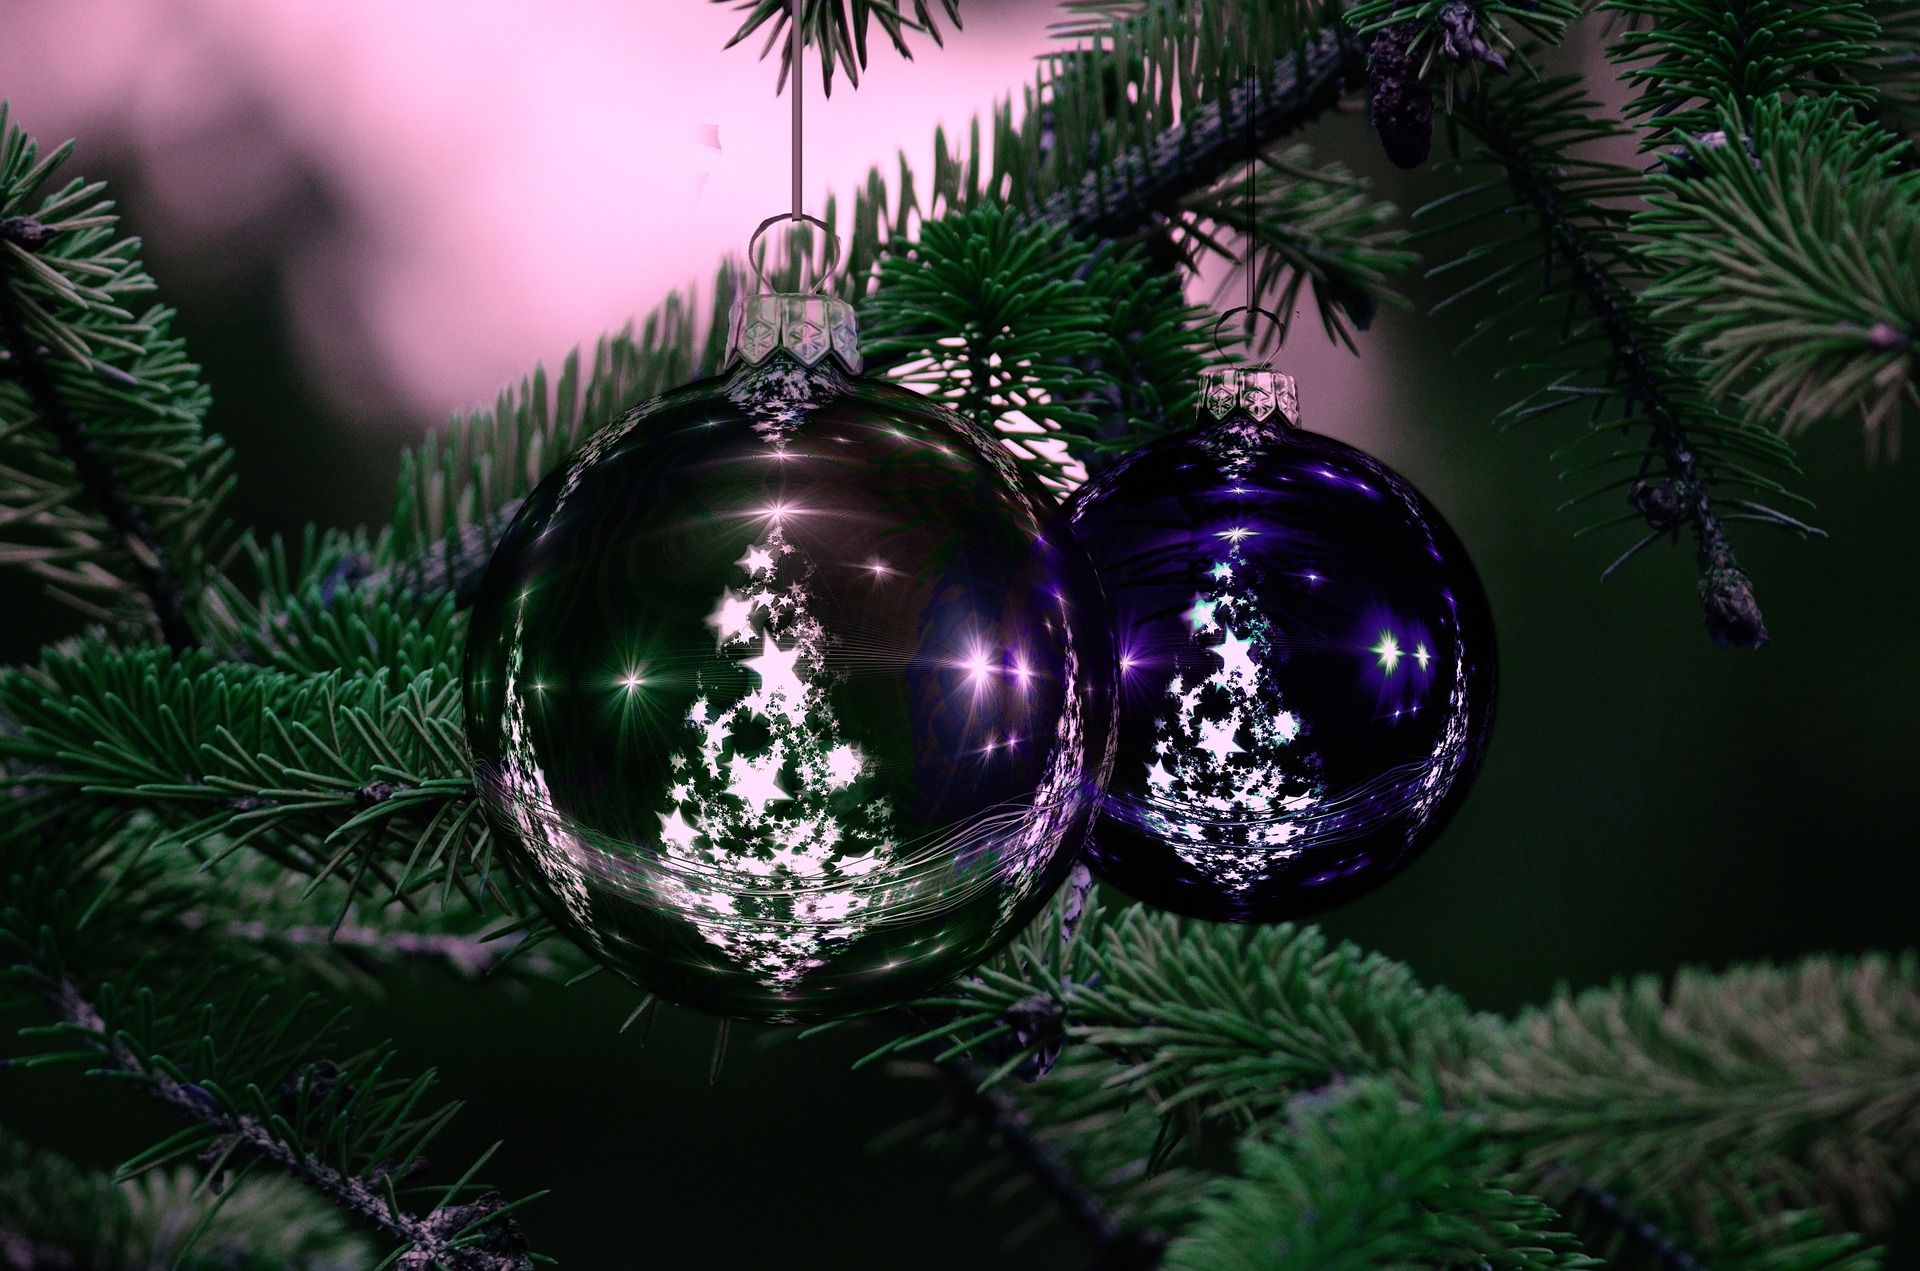 when does the christmas tree go up in your house - When Does The Christmas Tree Go Up